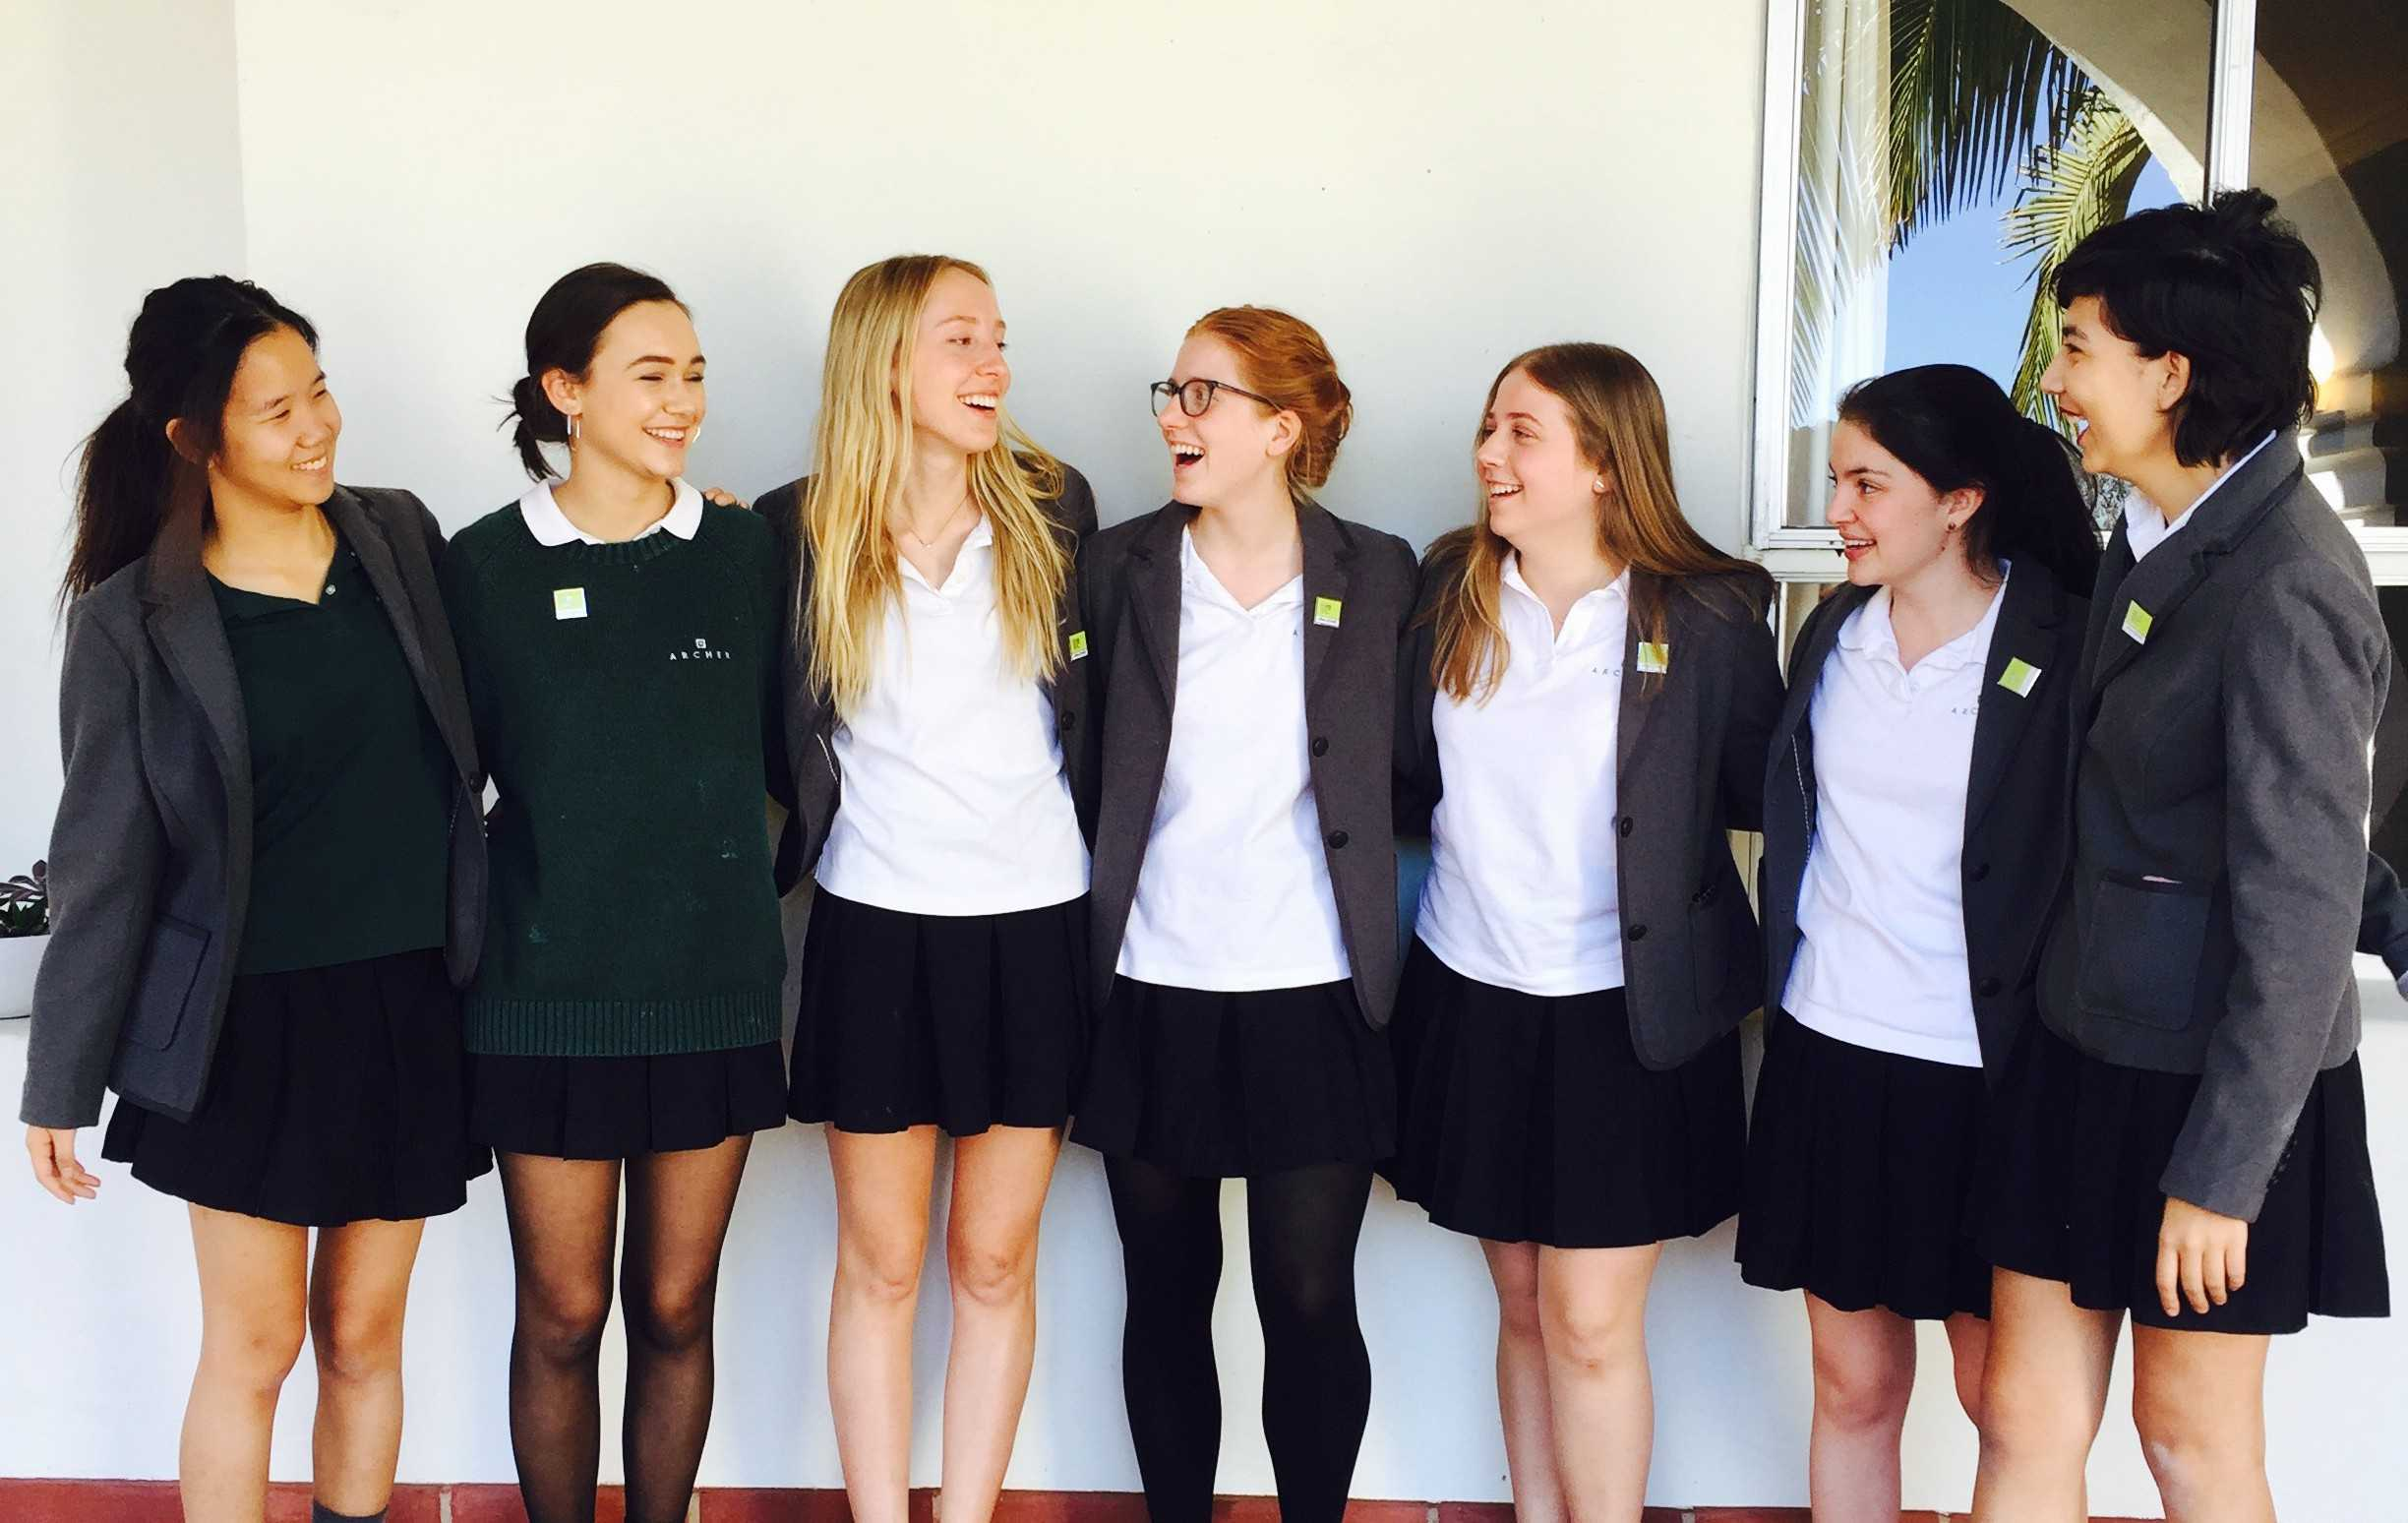 Archer seniors pose for a picture in their formal uniforms designed by Lands' End. The company is under fire by both conservatives and liberals after publishing a feature on Gloria Steinem in their catalogue. Photo courtesy of Syd Stone '16.